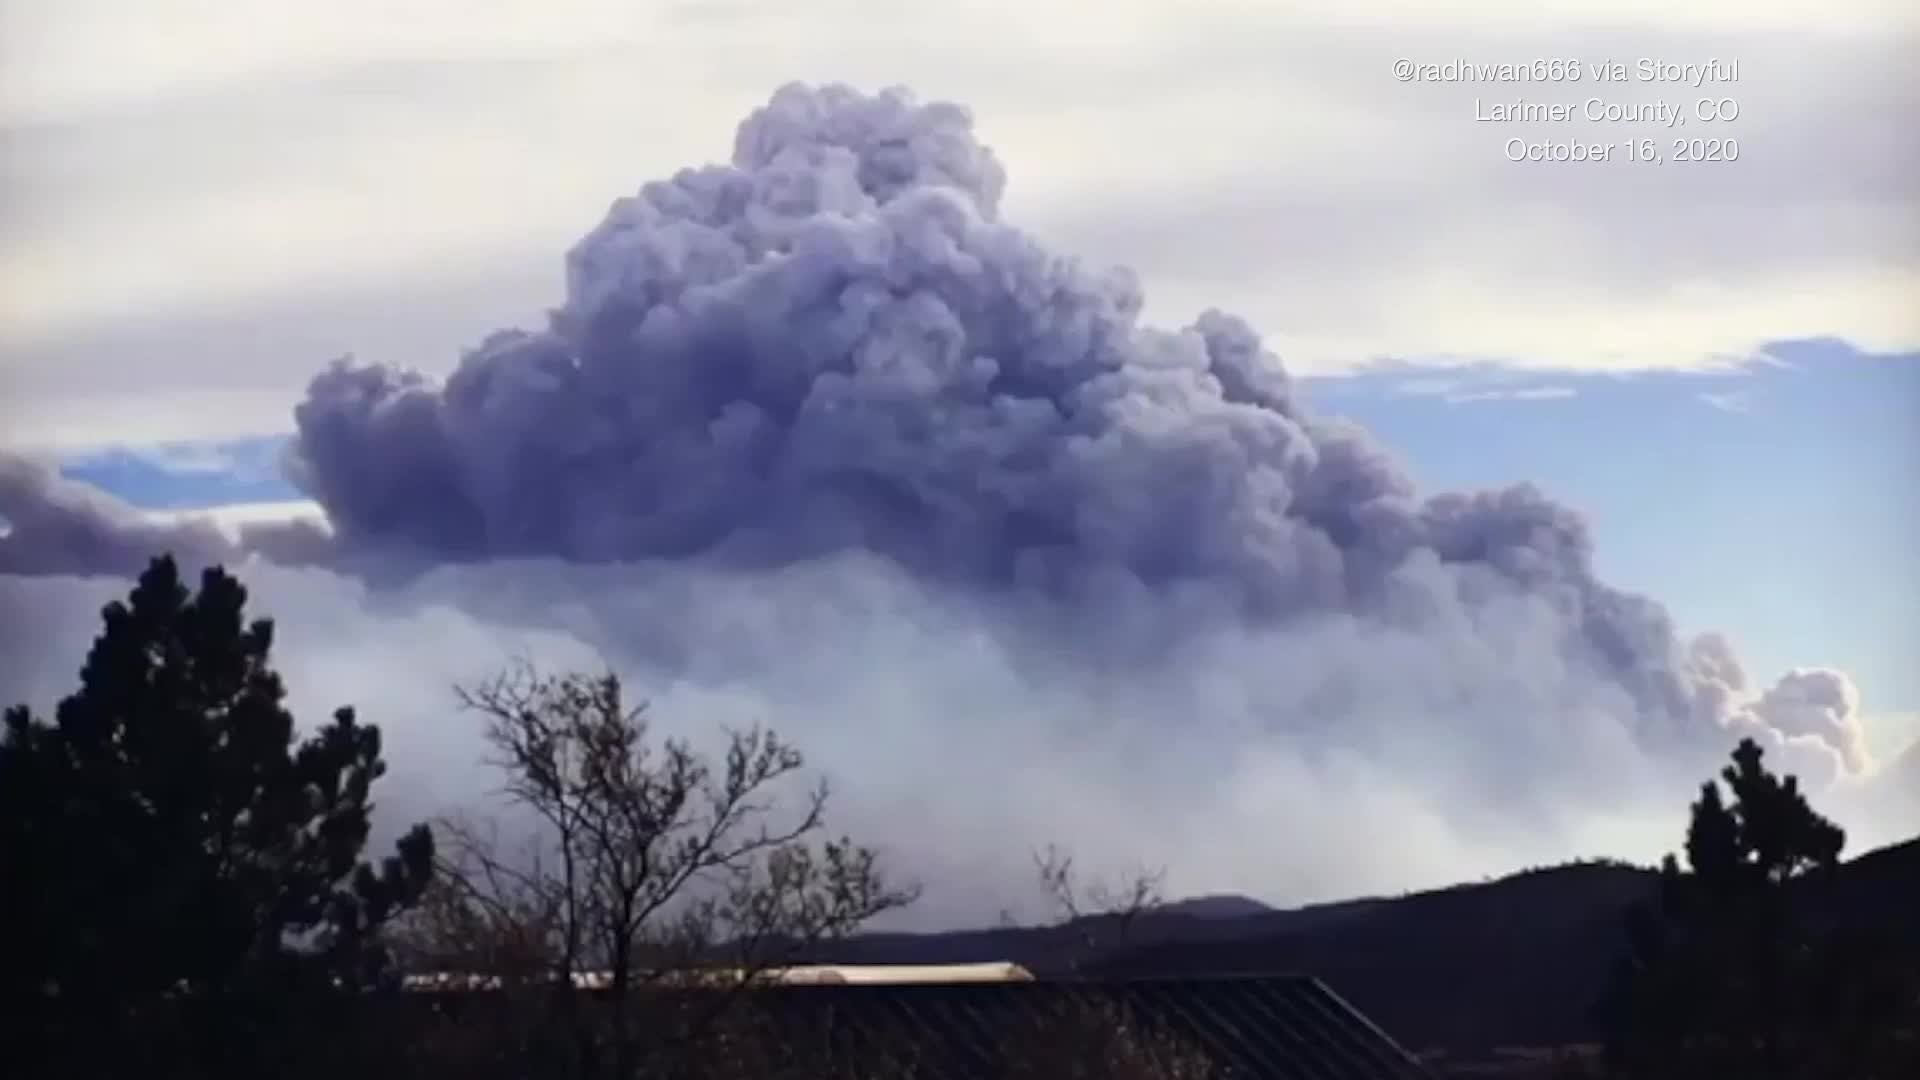 Largest Fire in Colorado History Gets Even Bigger - Videos from The Weather Channel | weather.com